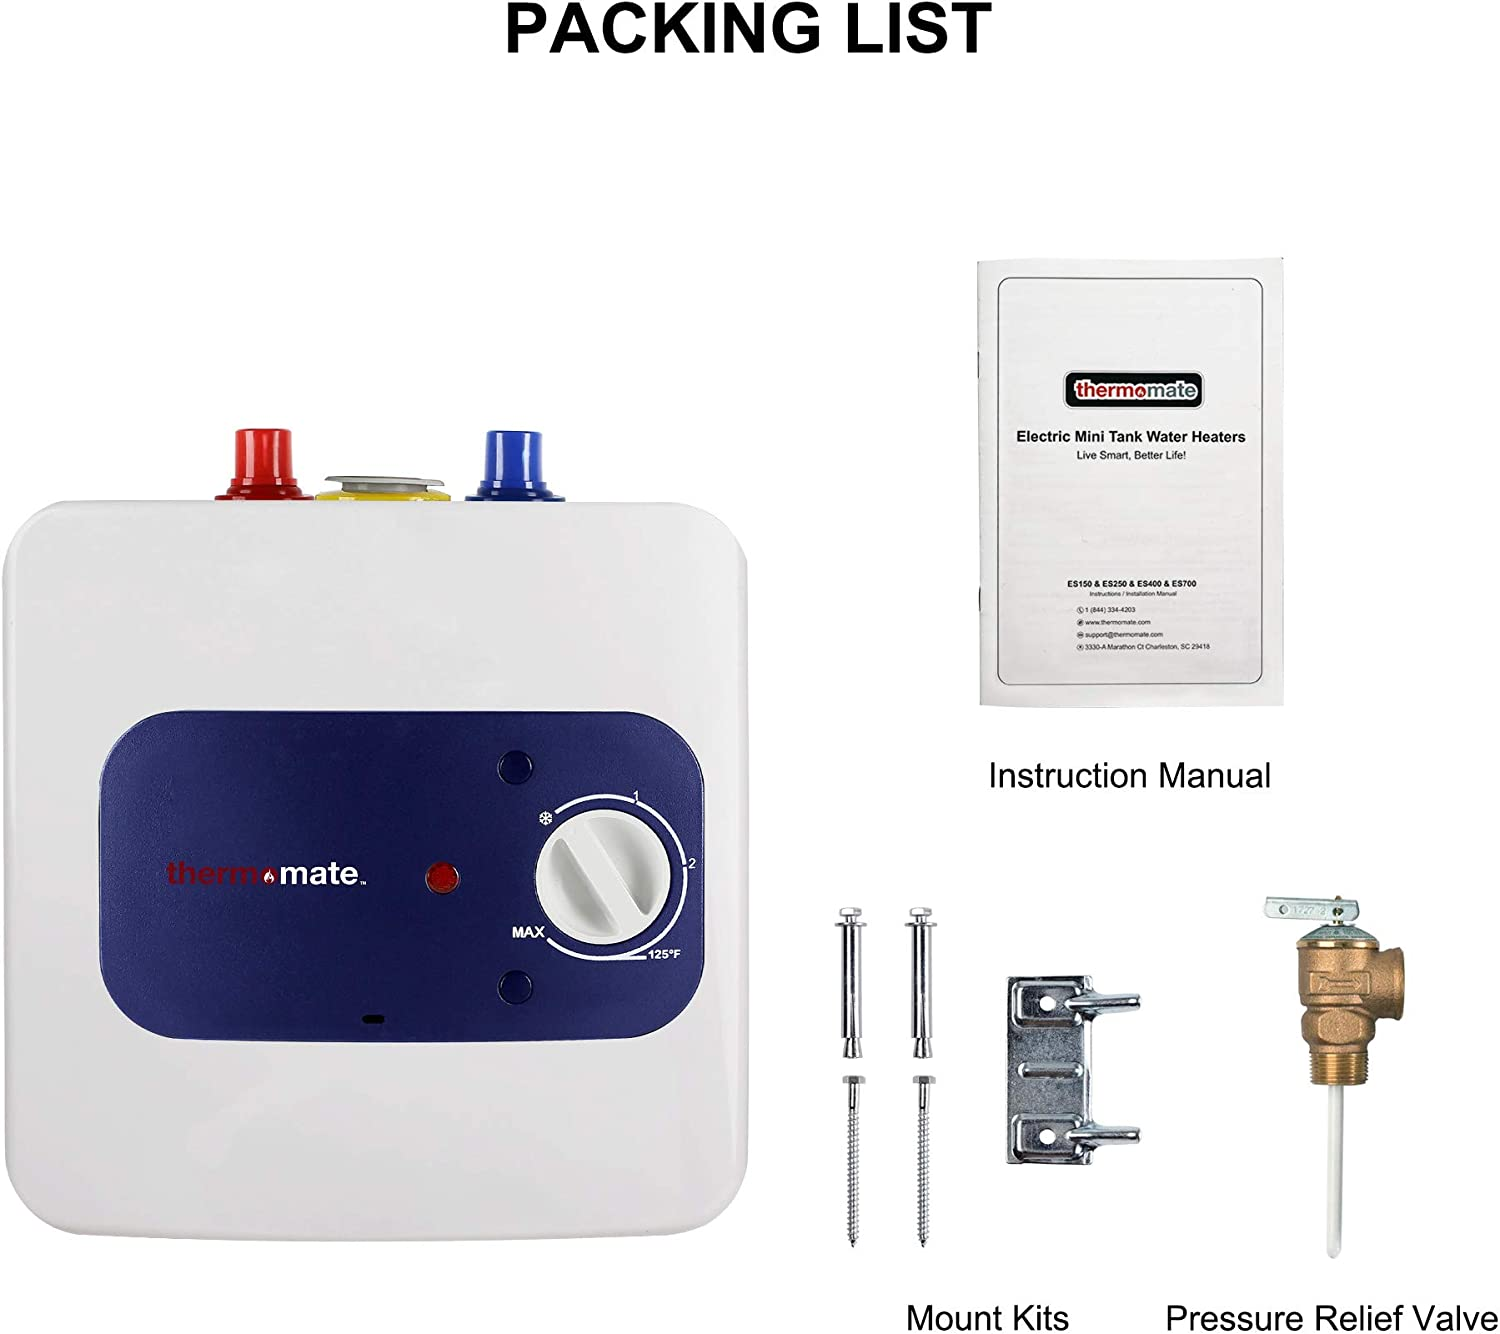 Thermomate Mini Tank Electric Water Heater ES250 2.5 Gallons Point of Use Water Heater for Instant Hot Water Under Kitchen Sink 120V 1440W